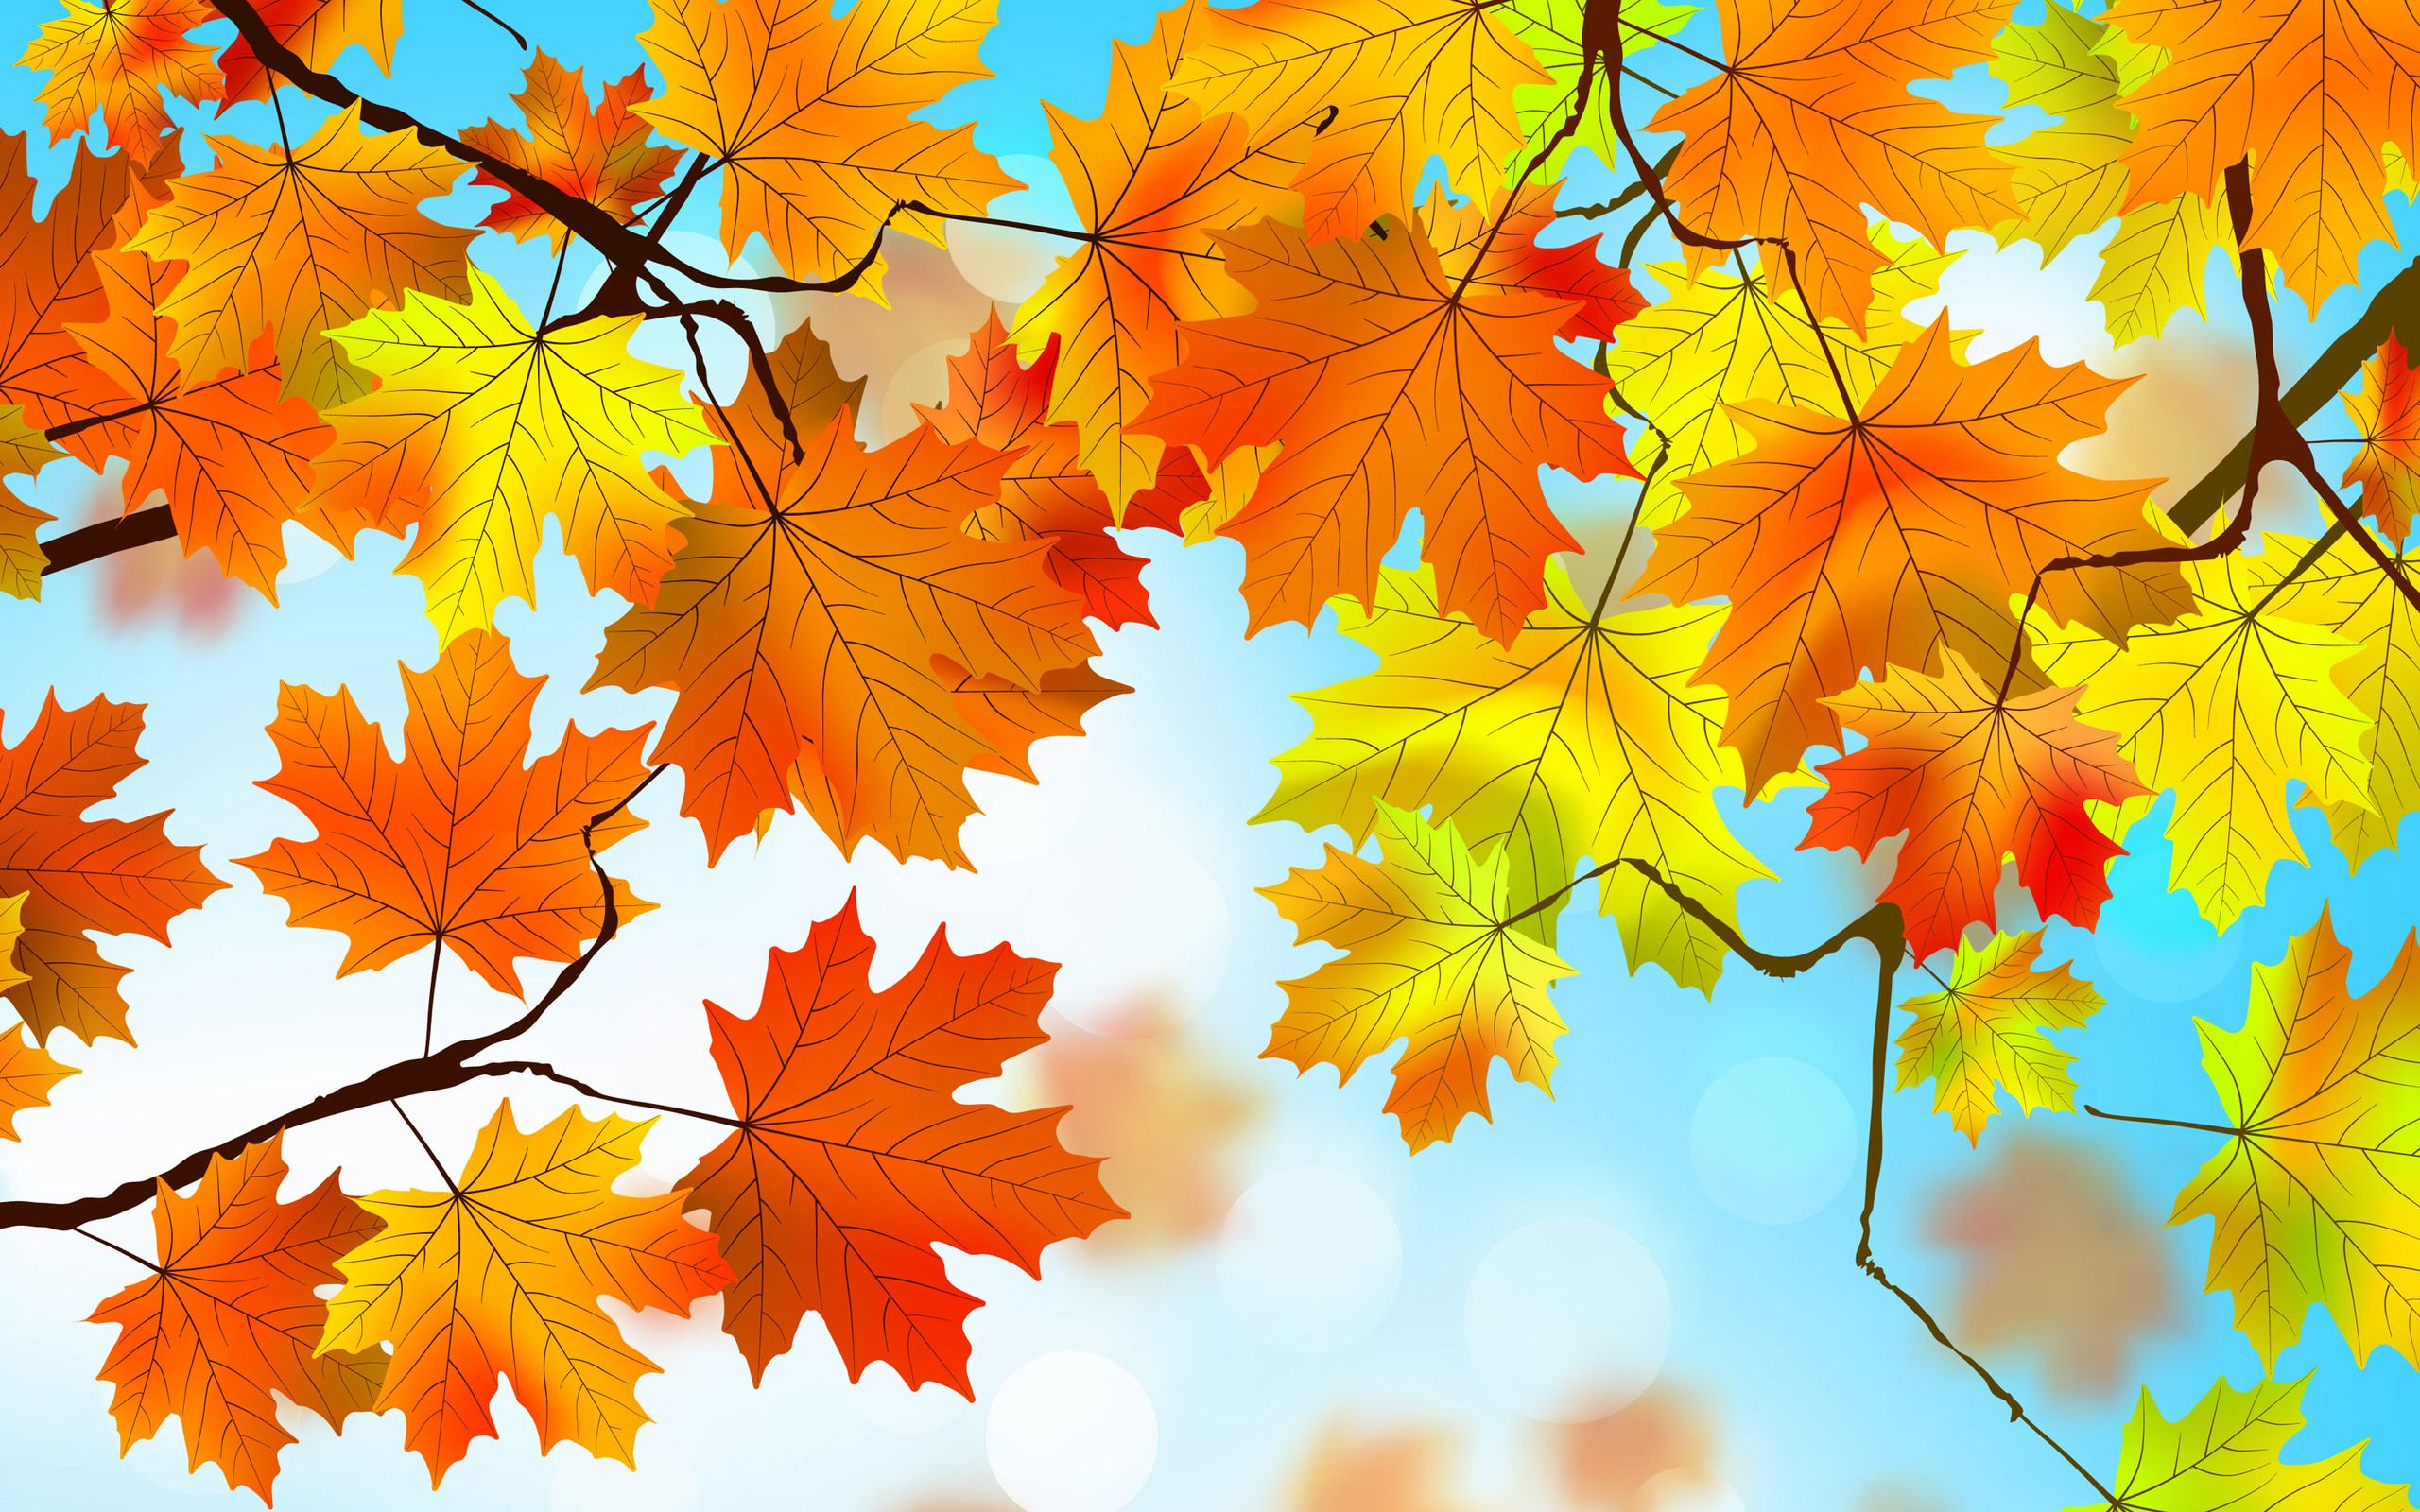 35 Beautiful Autumn Leaves HD Wallpapers